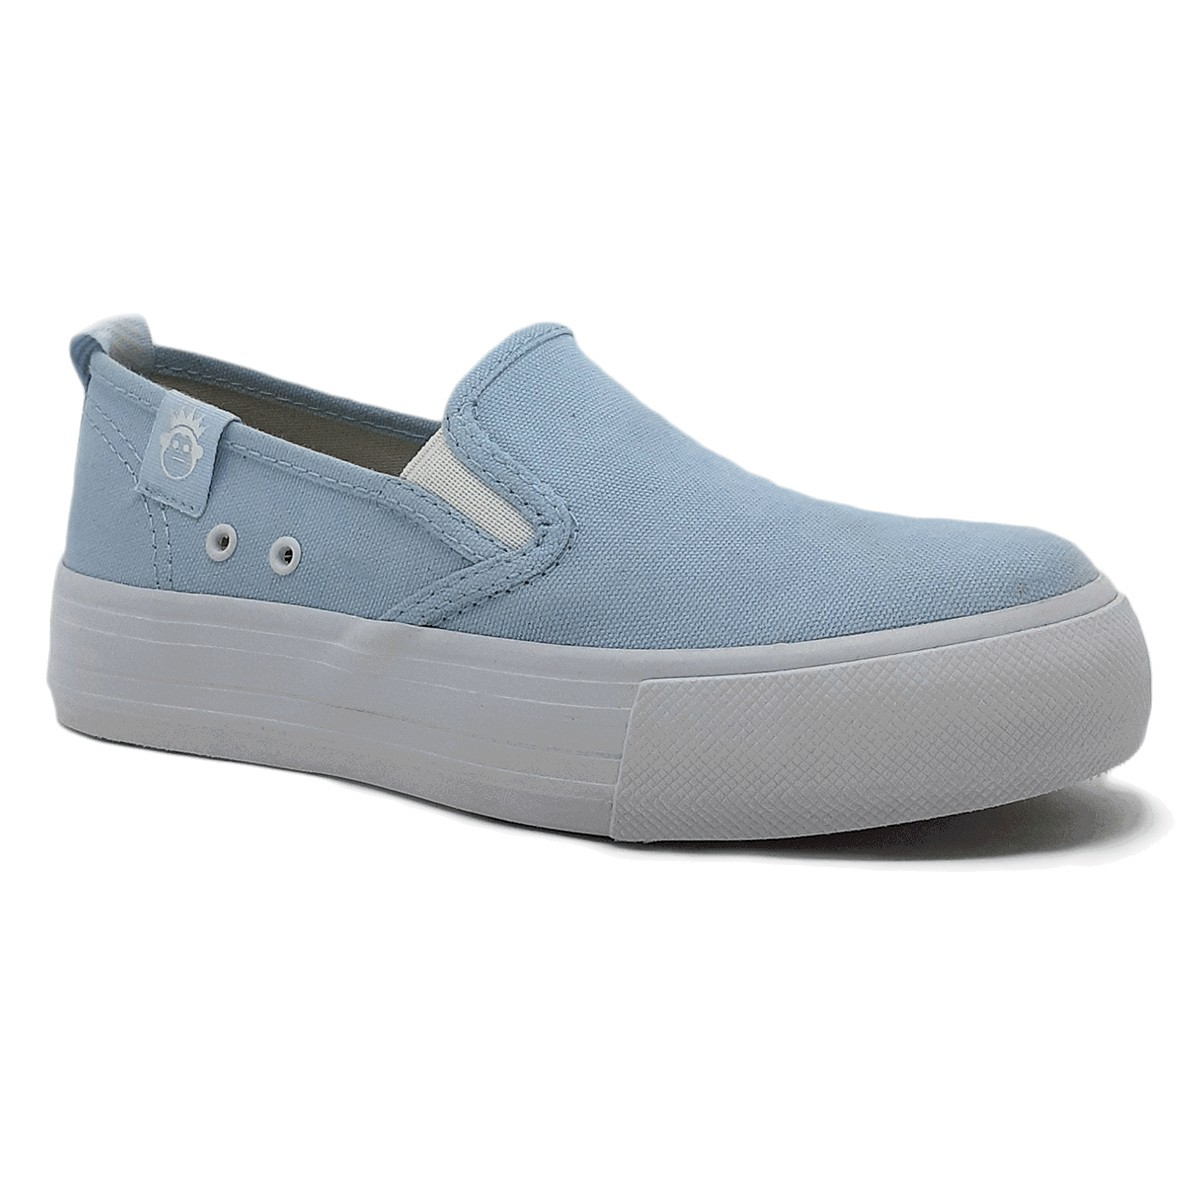 Tênis Slip On Kings Lona 3010 - Azul Claro